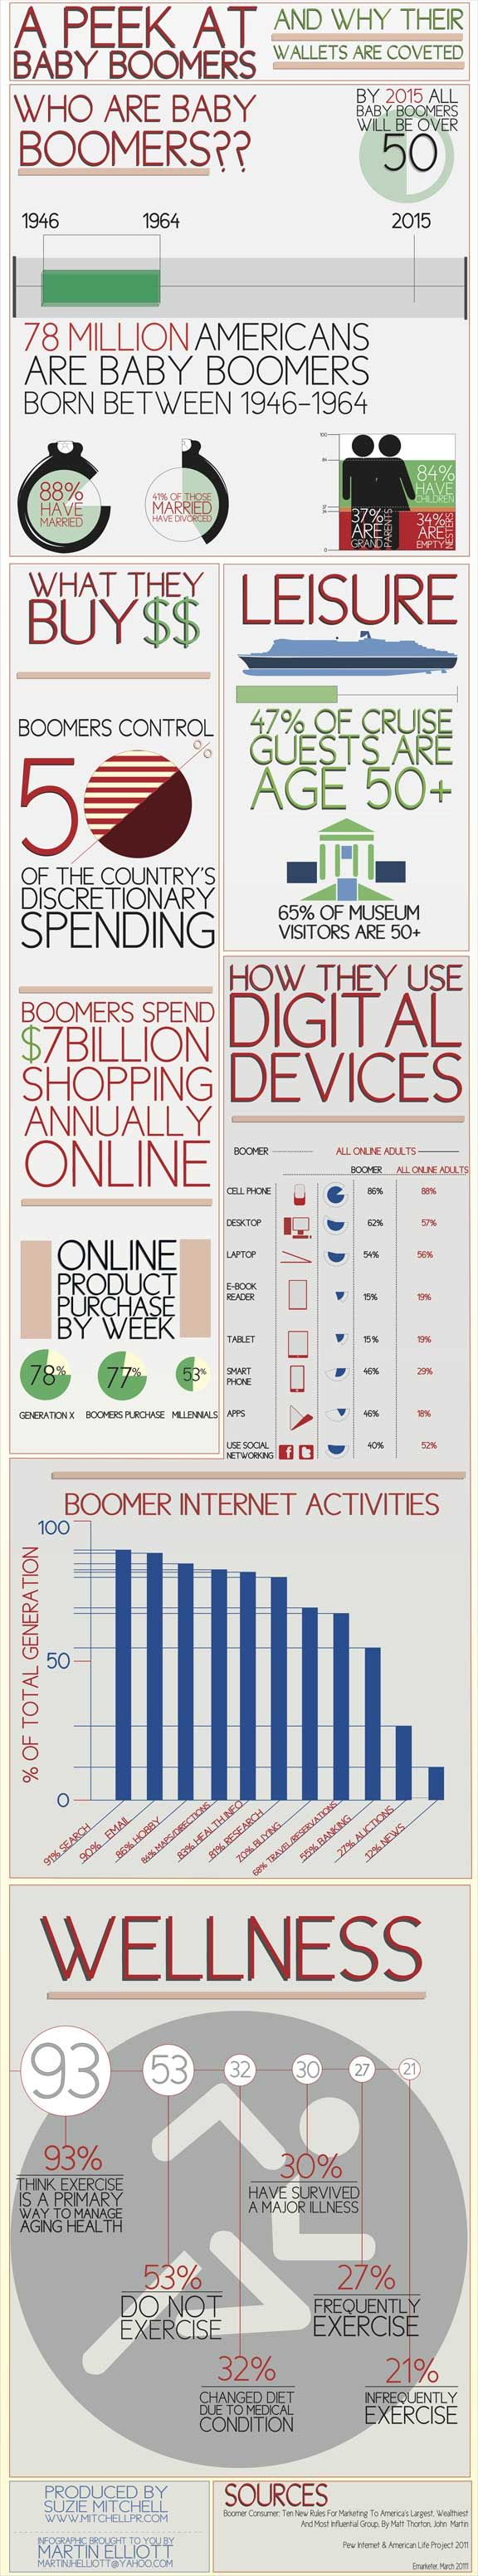 A look at Baby Boomers, the largest and wealthiest co-hort in America. A view of their spending habits and use of digital devices.